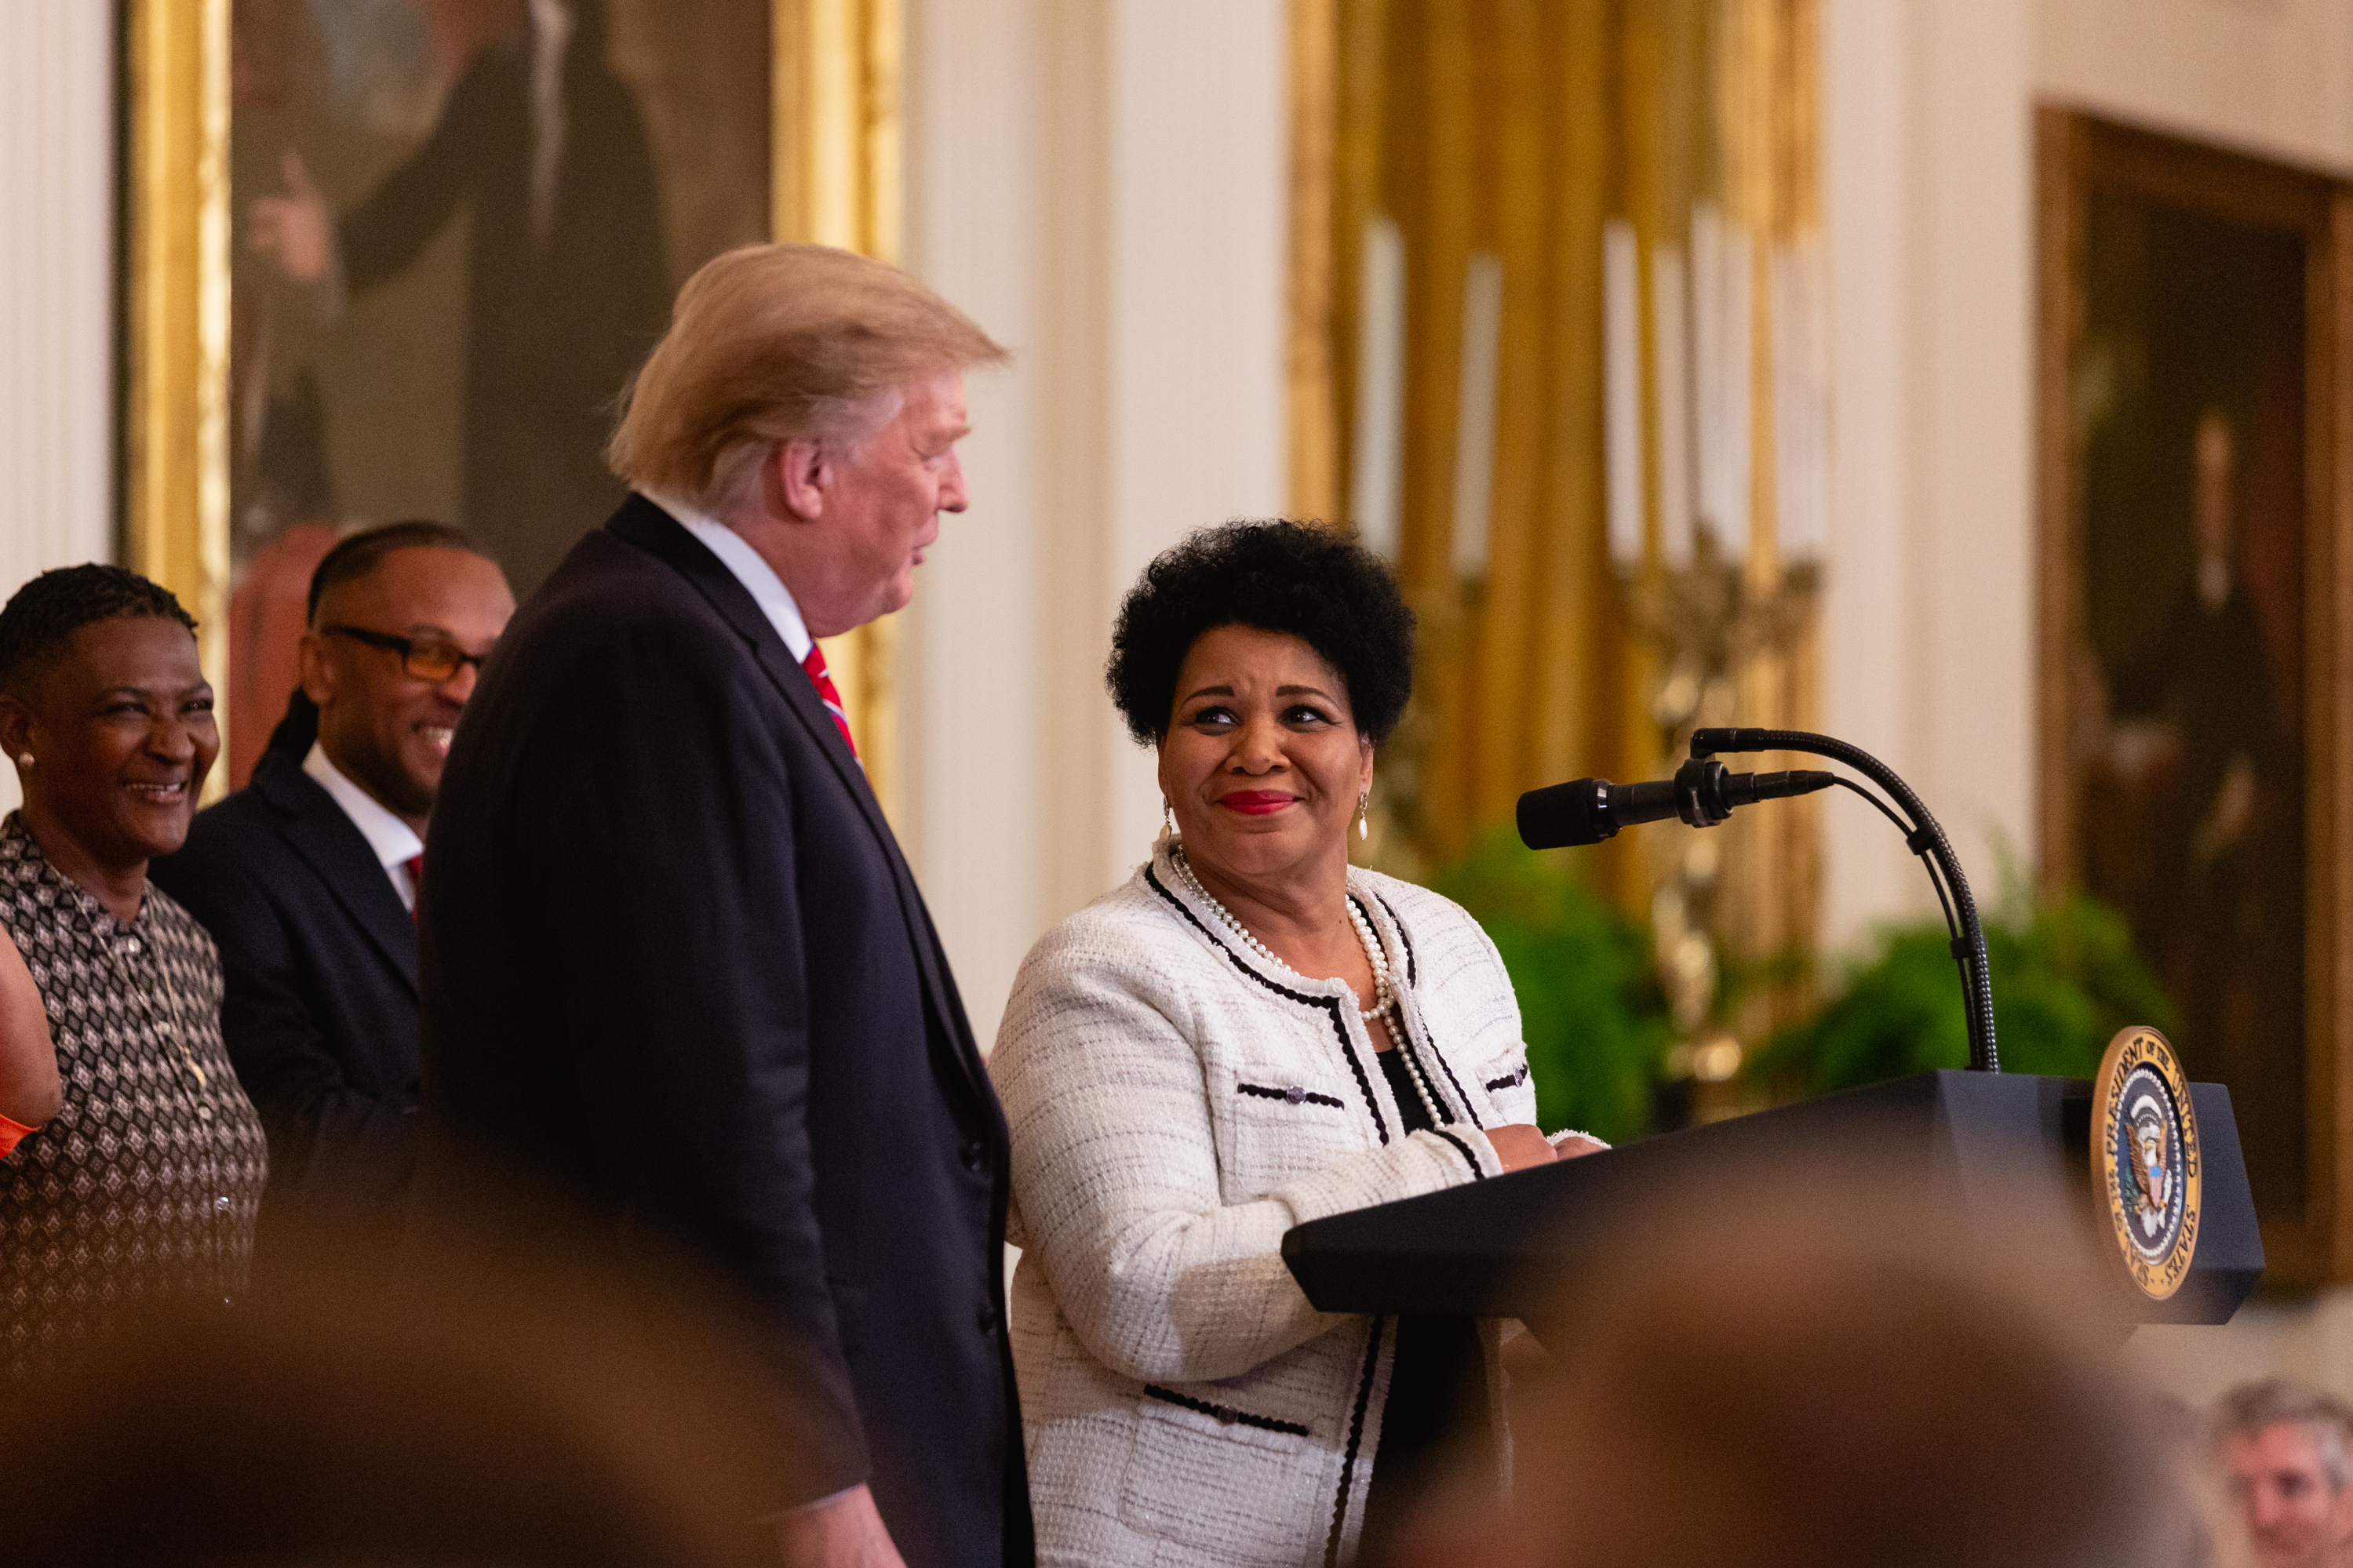 Alice Marie Johnson speaks at the 2019 White House Prison Reform Summit and First Step Act celebration at the White House in Washington, D.C. on Monday, April 1, 2019.